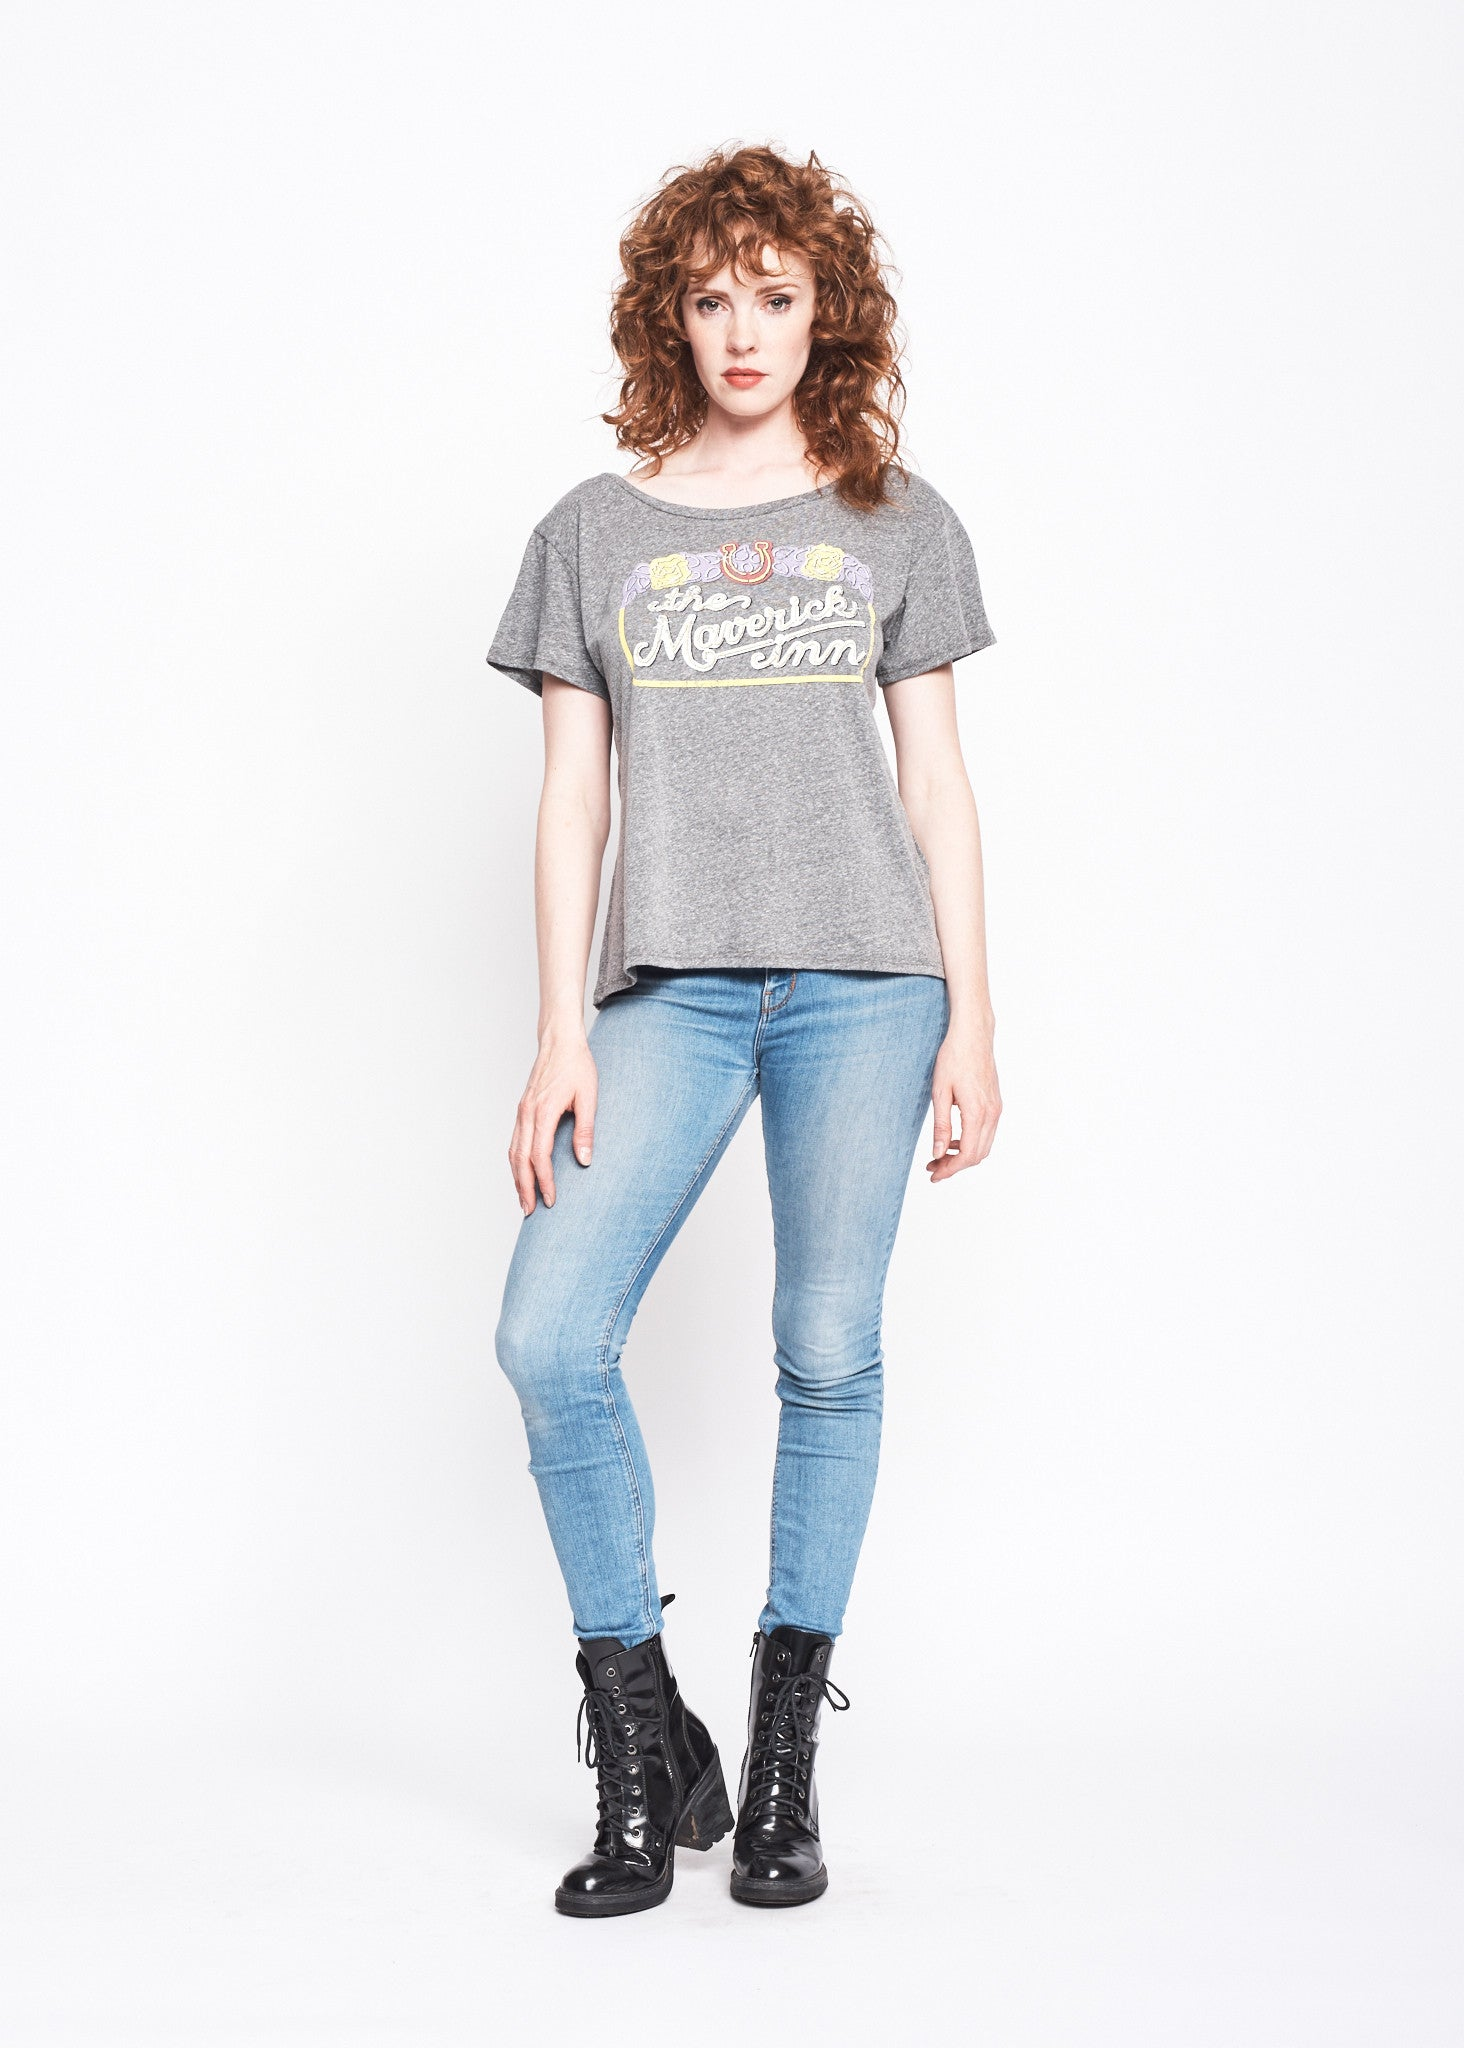 Maverick Inn Boyfriend Tee - Heather Grey